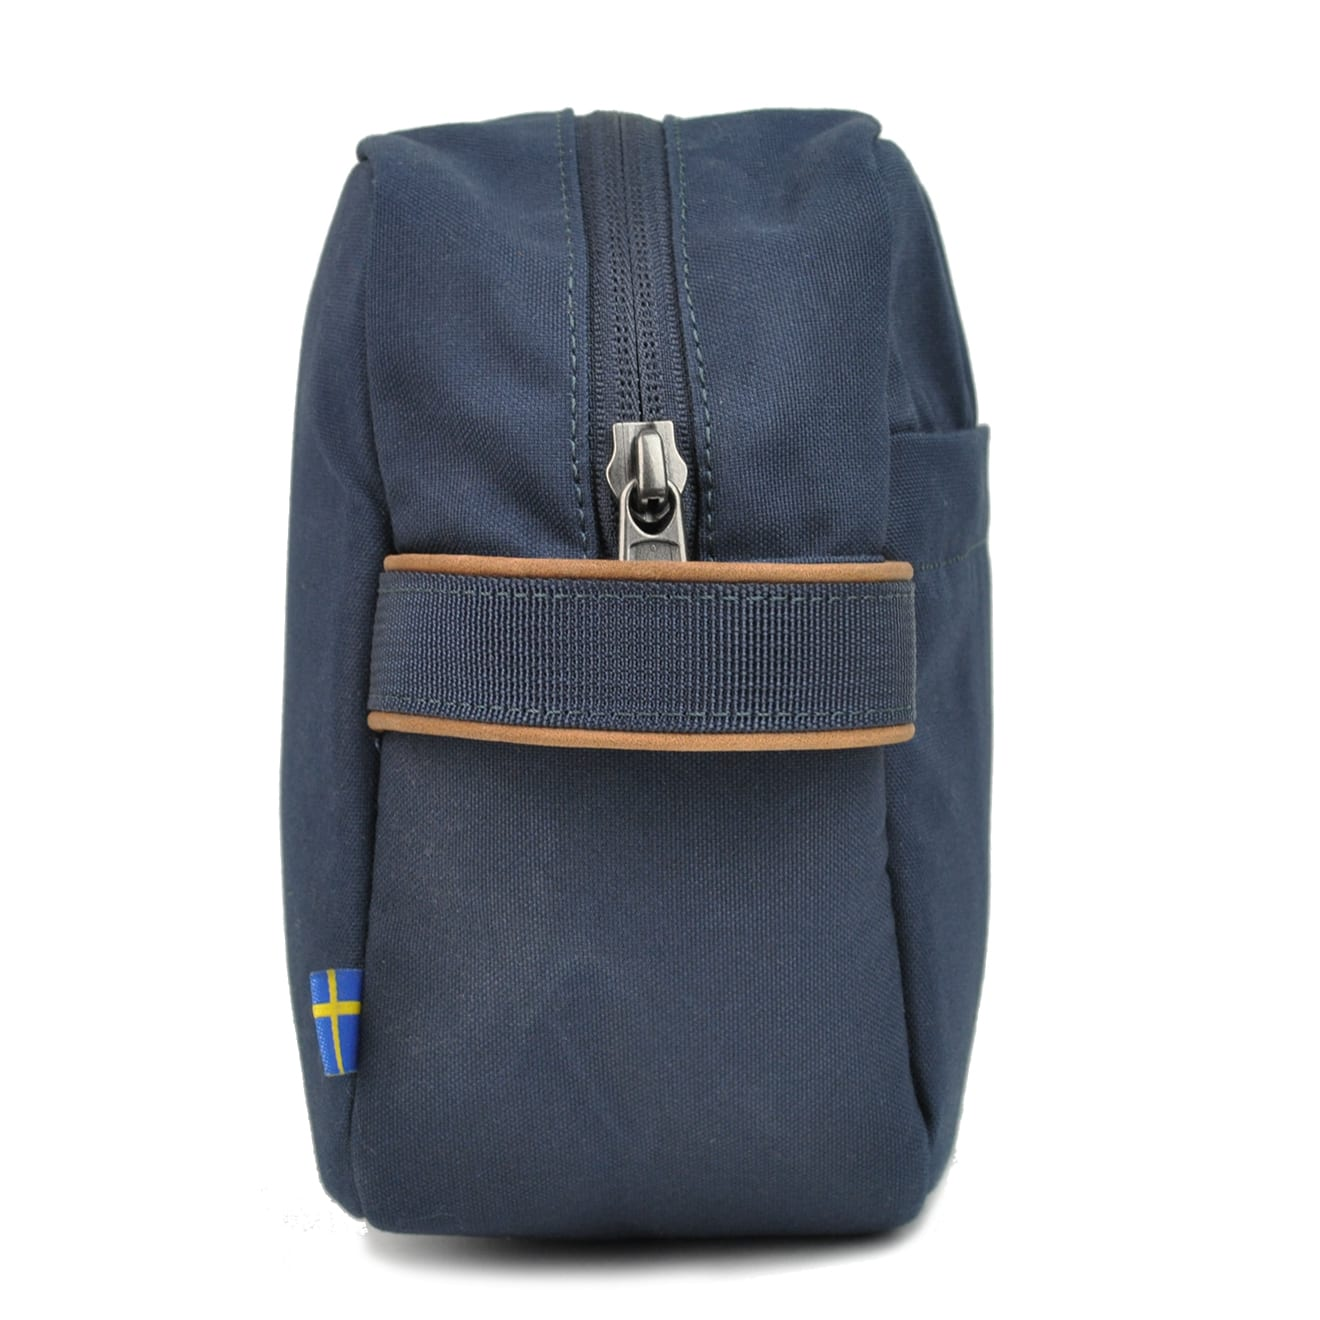 Fjallraven Travel Toiletry Bag Navy - The Sporting Lodge ce1bcaff45663